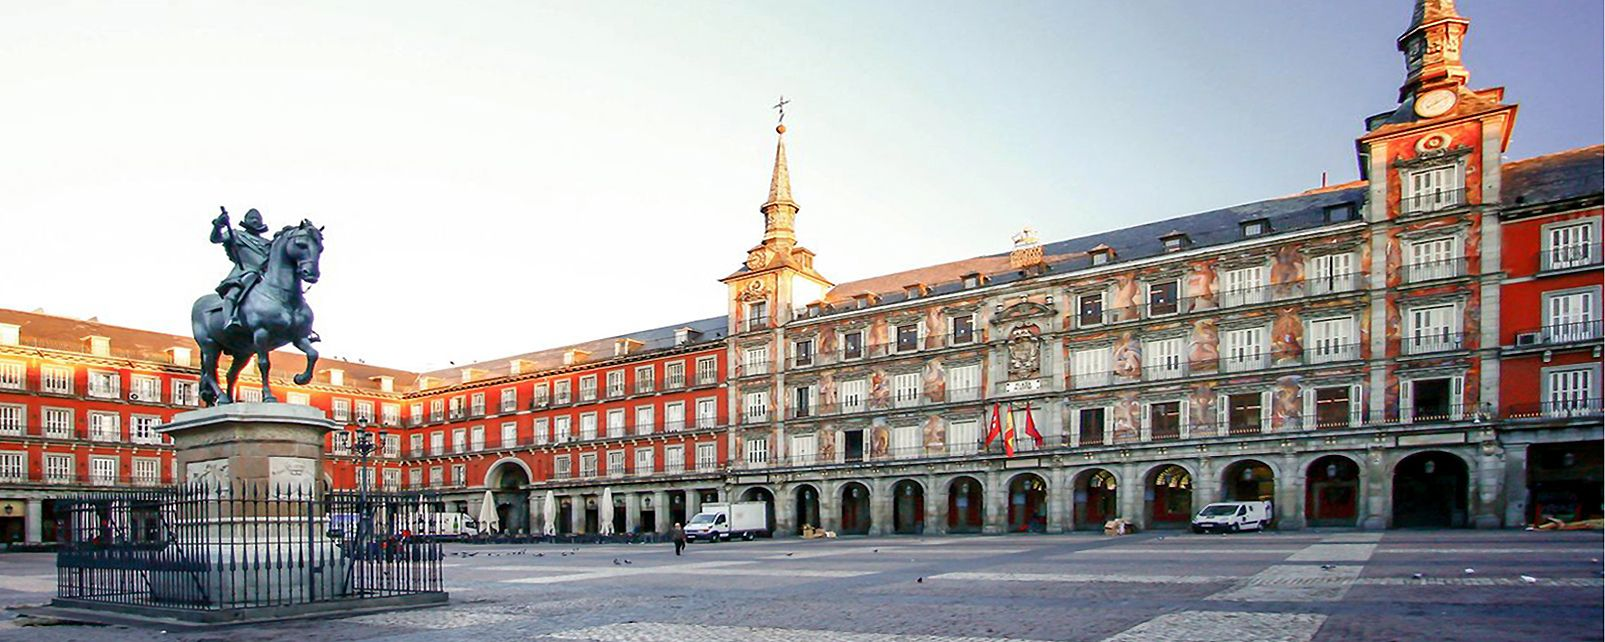 La Plaza Mayor de Madrid, Les arts et la culture, Madrid, Communauté de Madrid